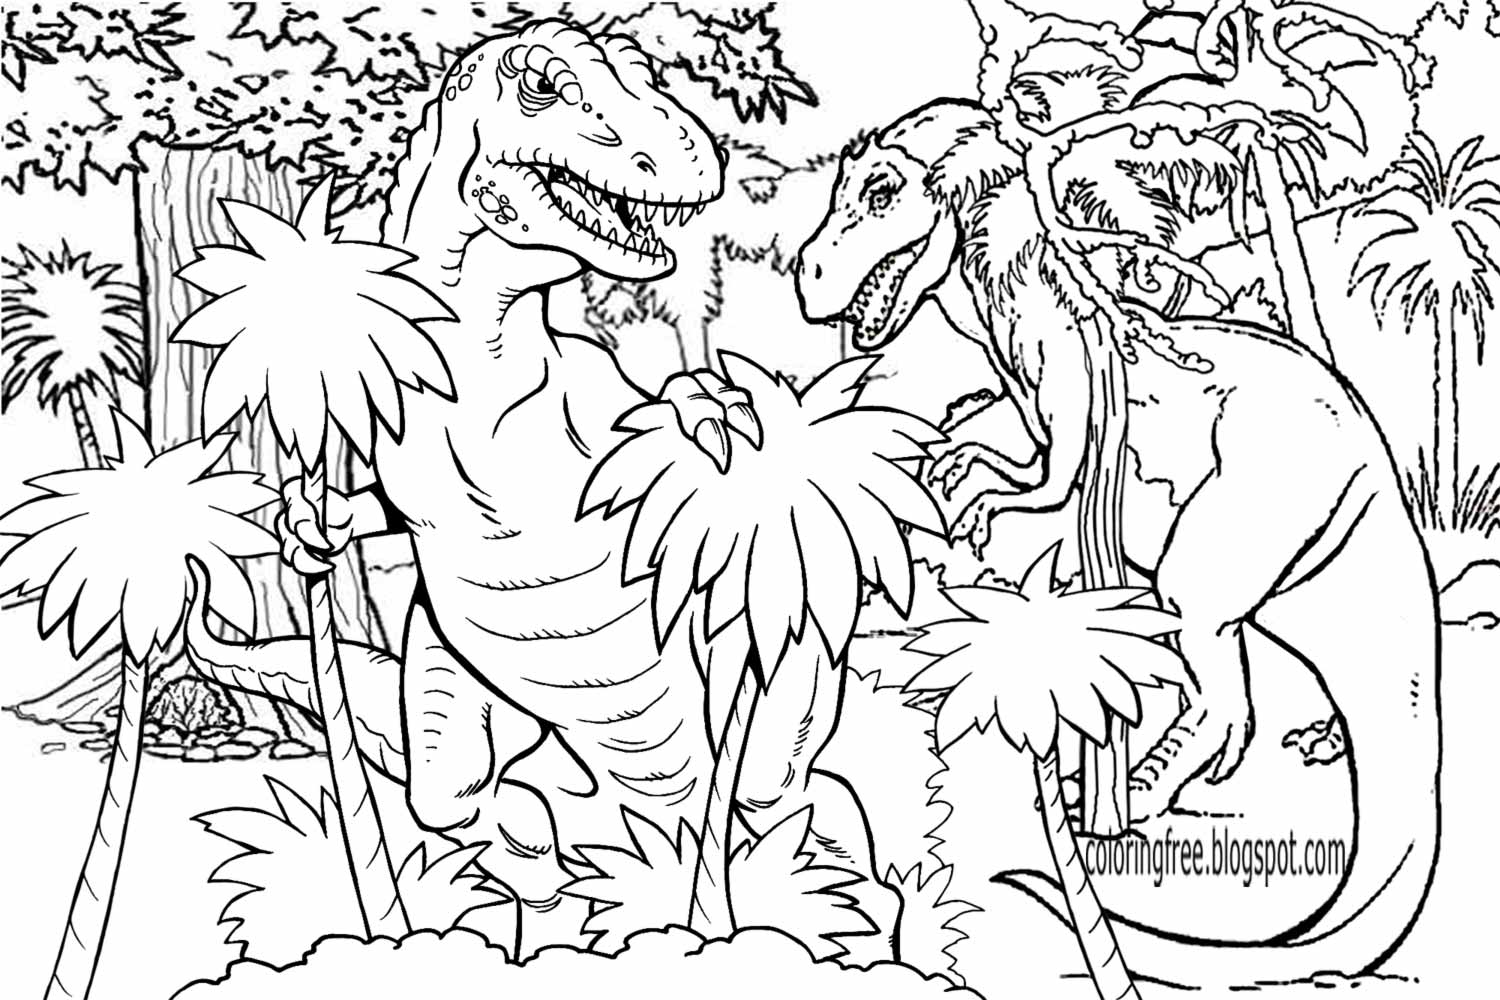 dinosaur colouring pages printable coloring pages dinosaur free printable coloring pages dinosaur printable colouring pages